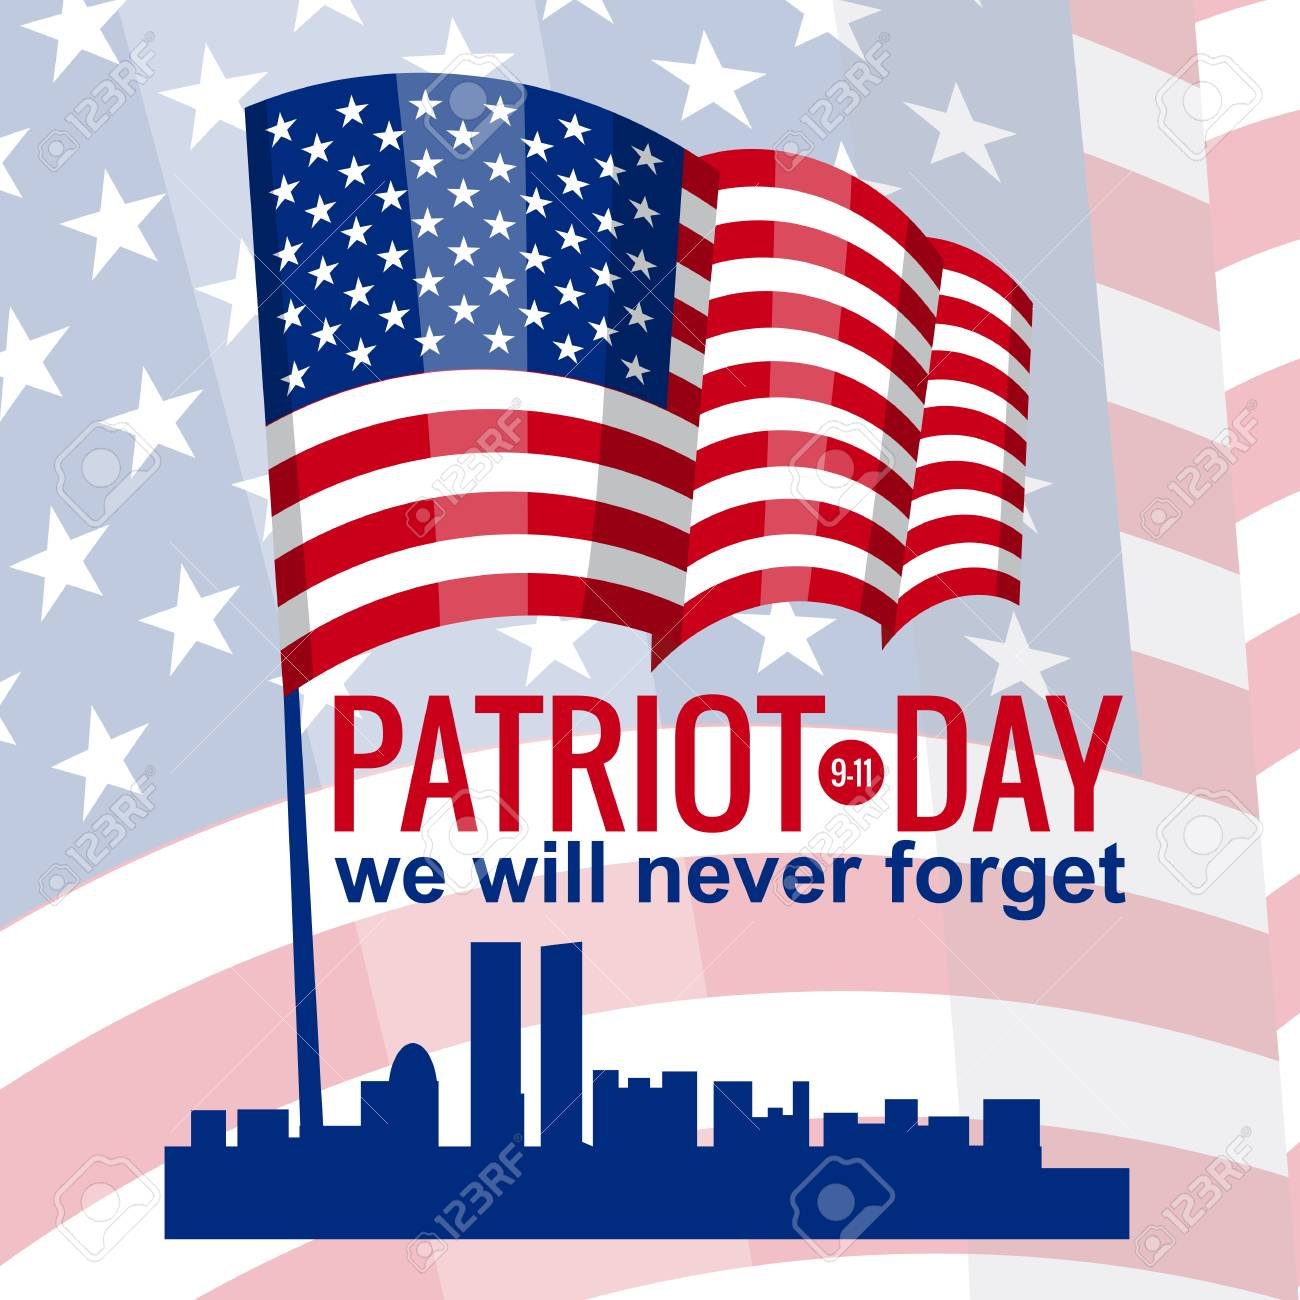 Patriot Day  September 11  We Will Never Forget, American